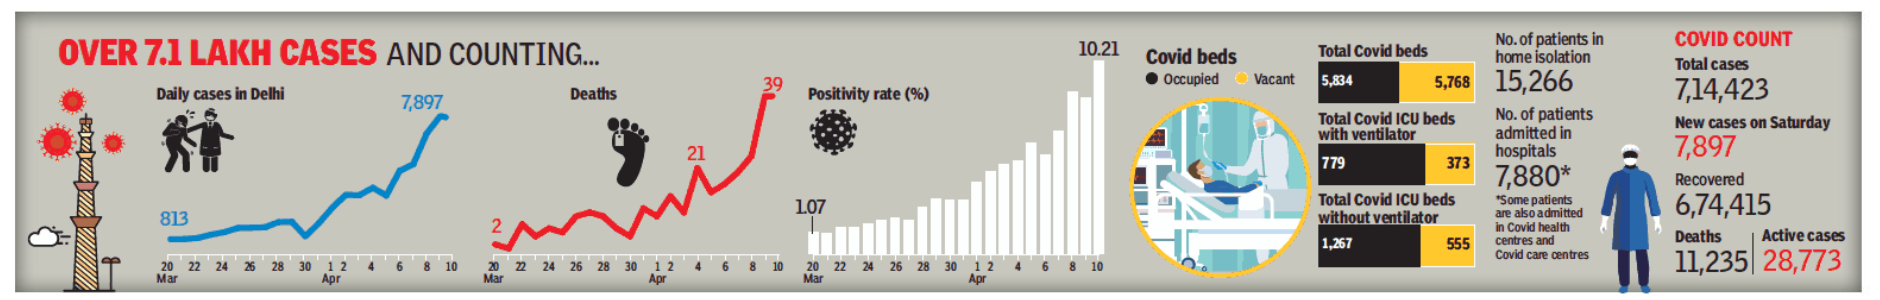 Positivity rate enters double digits in Delhi